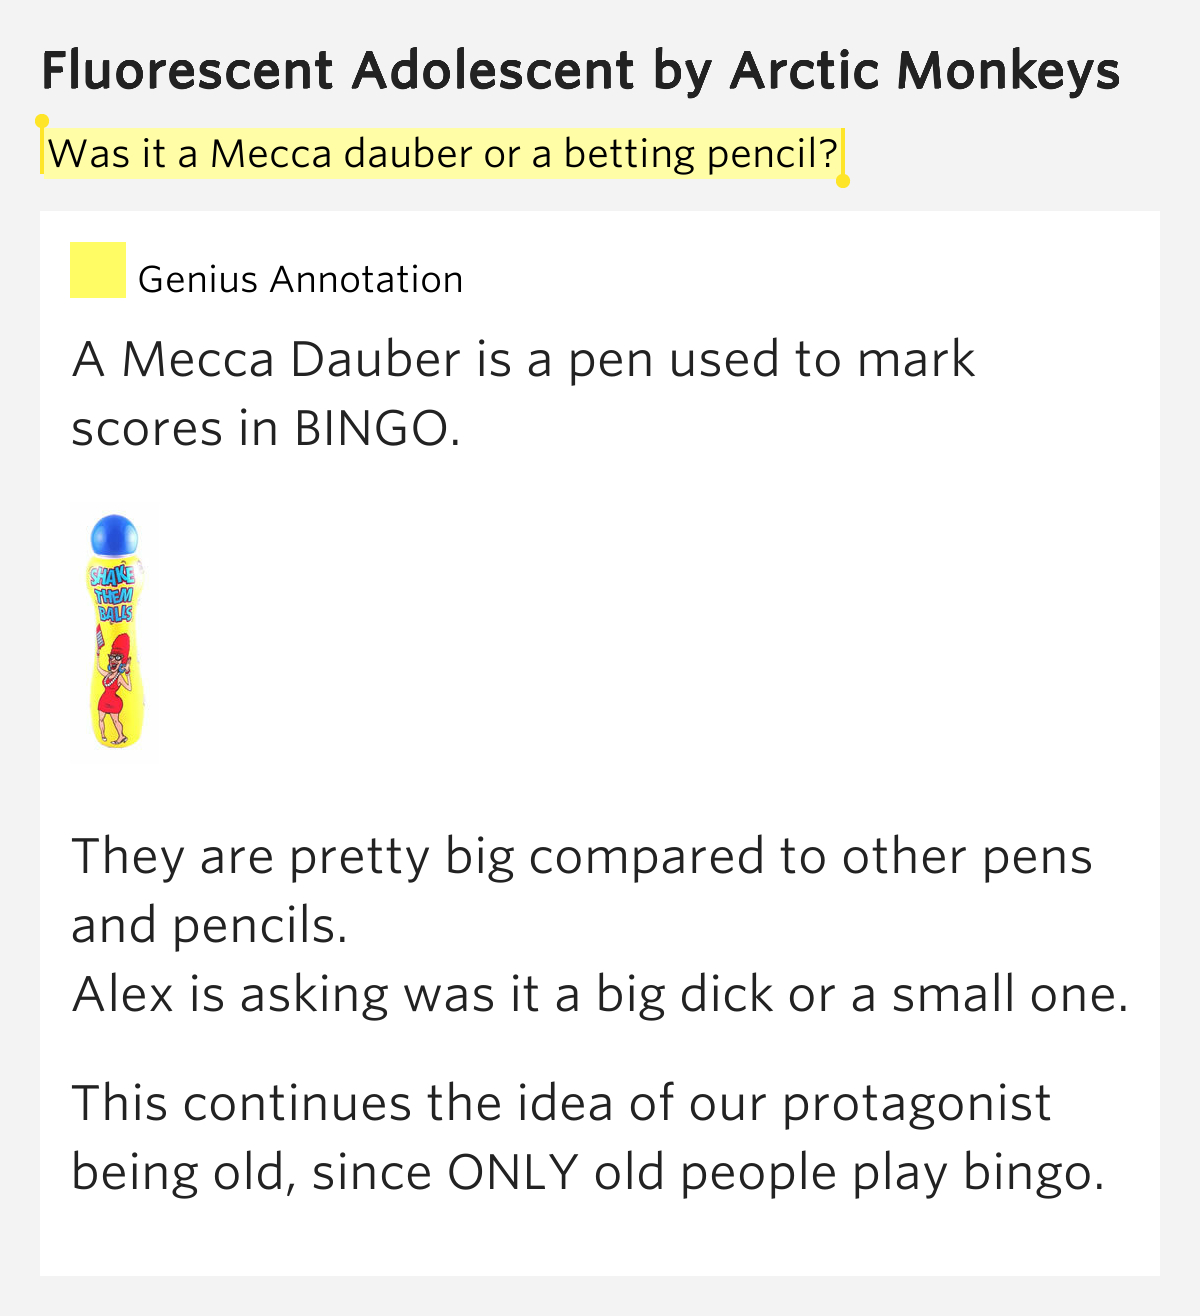 Was it a Mecca dauber or a betting pencil? - Fluorescent